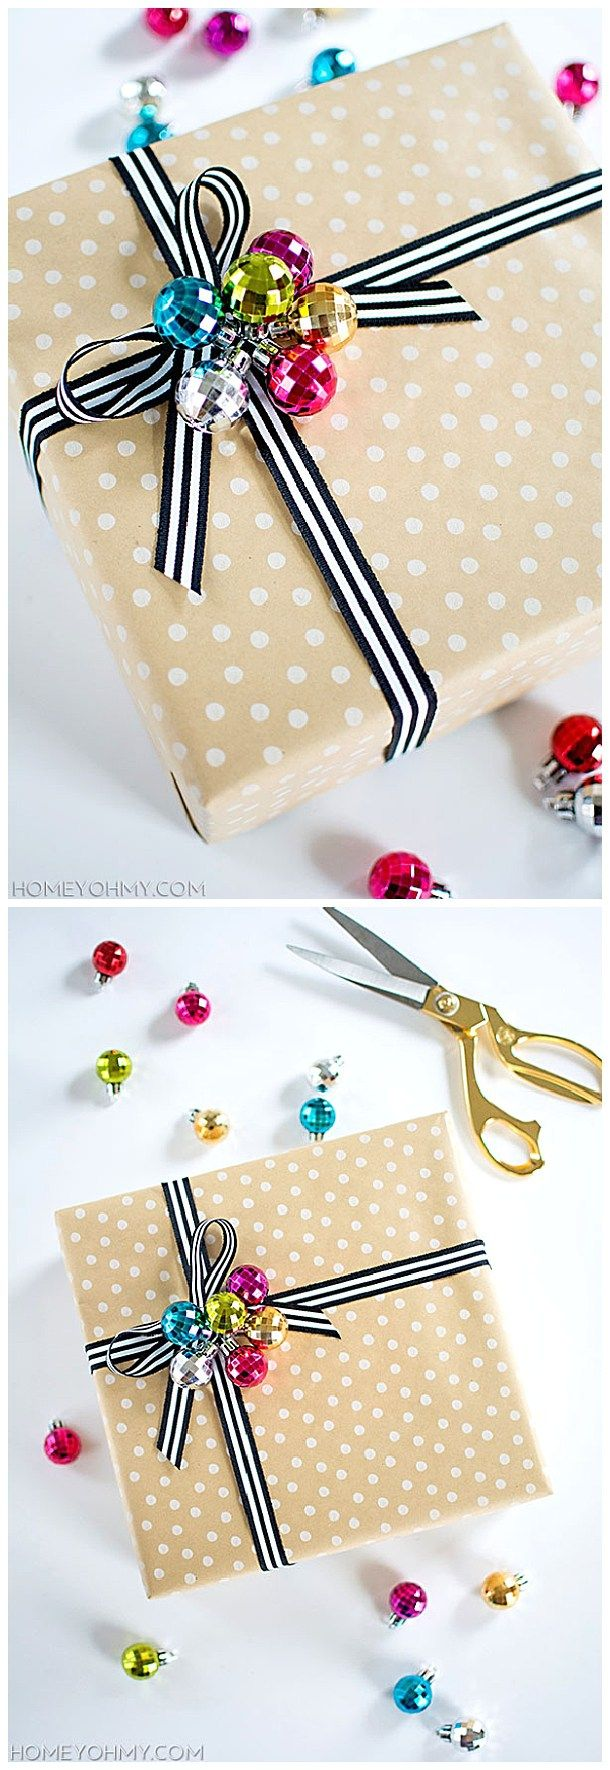 1000 ideas about inexpensive birthday gifts on pinterest for Inexpensive handmade gifts